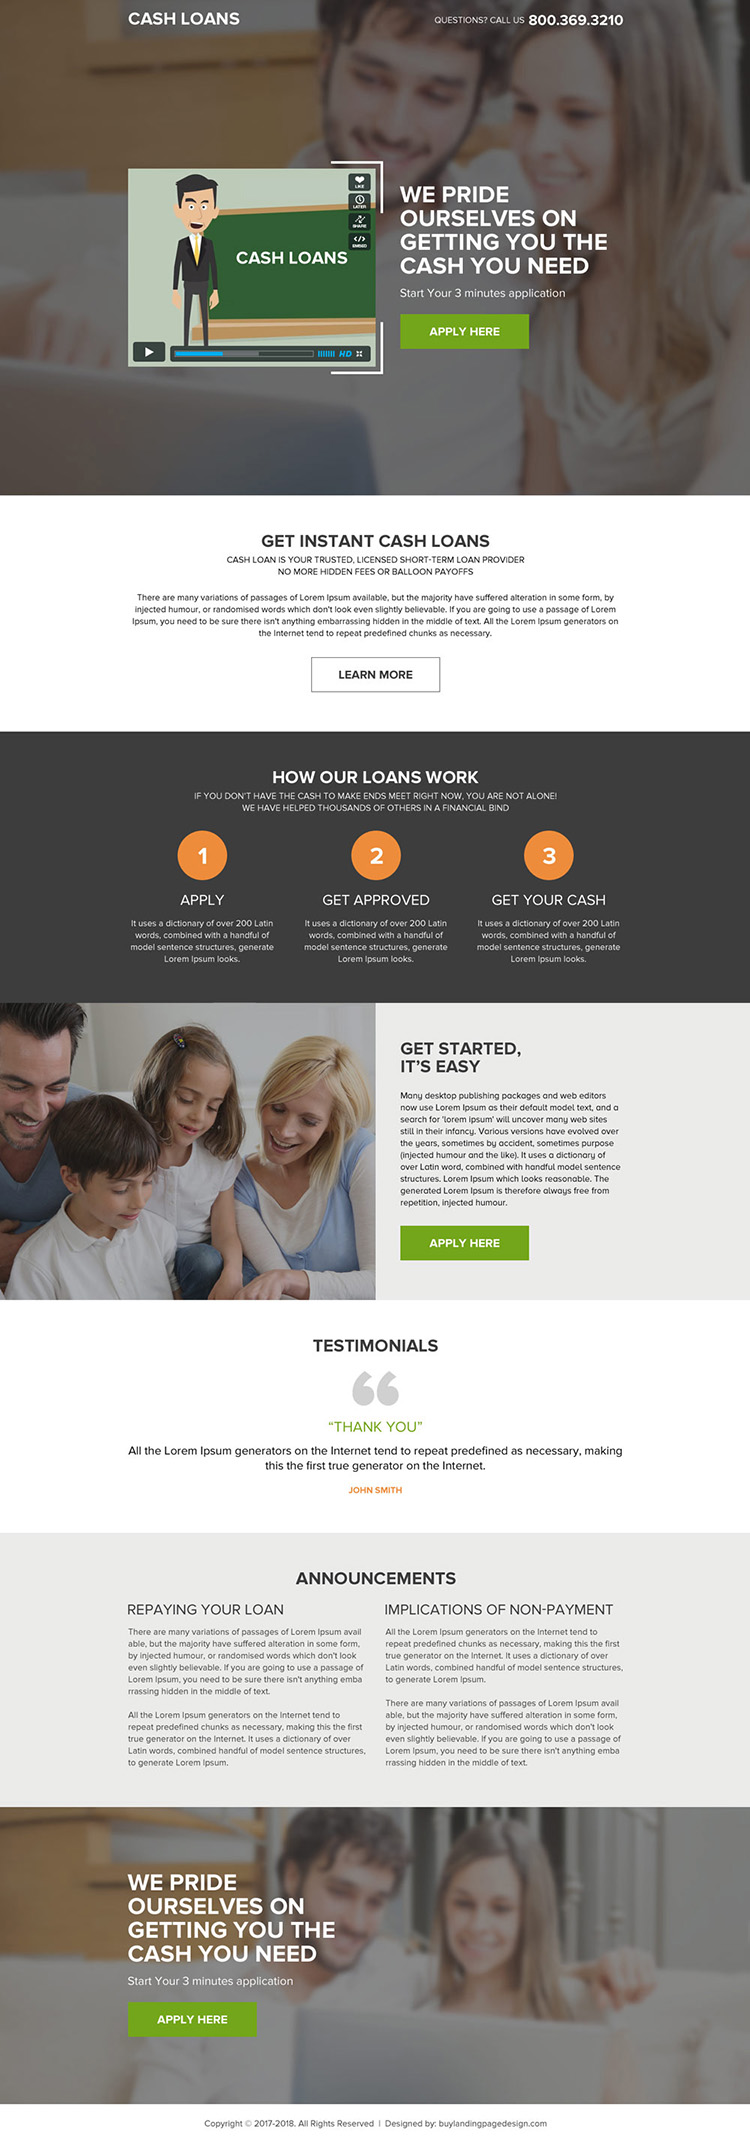 best cash loan video responsive landing page design